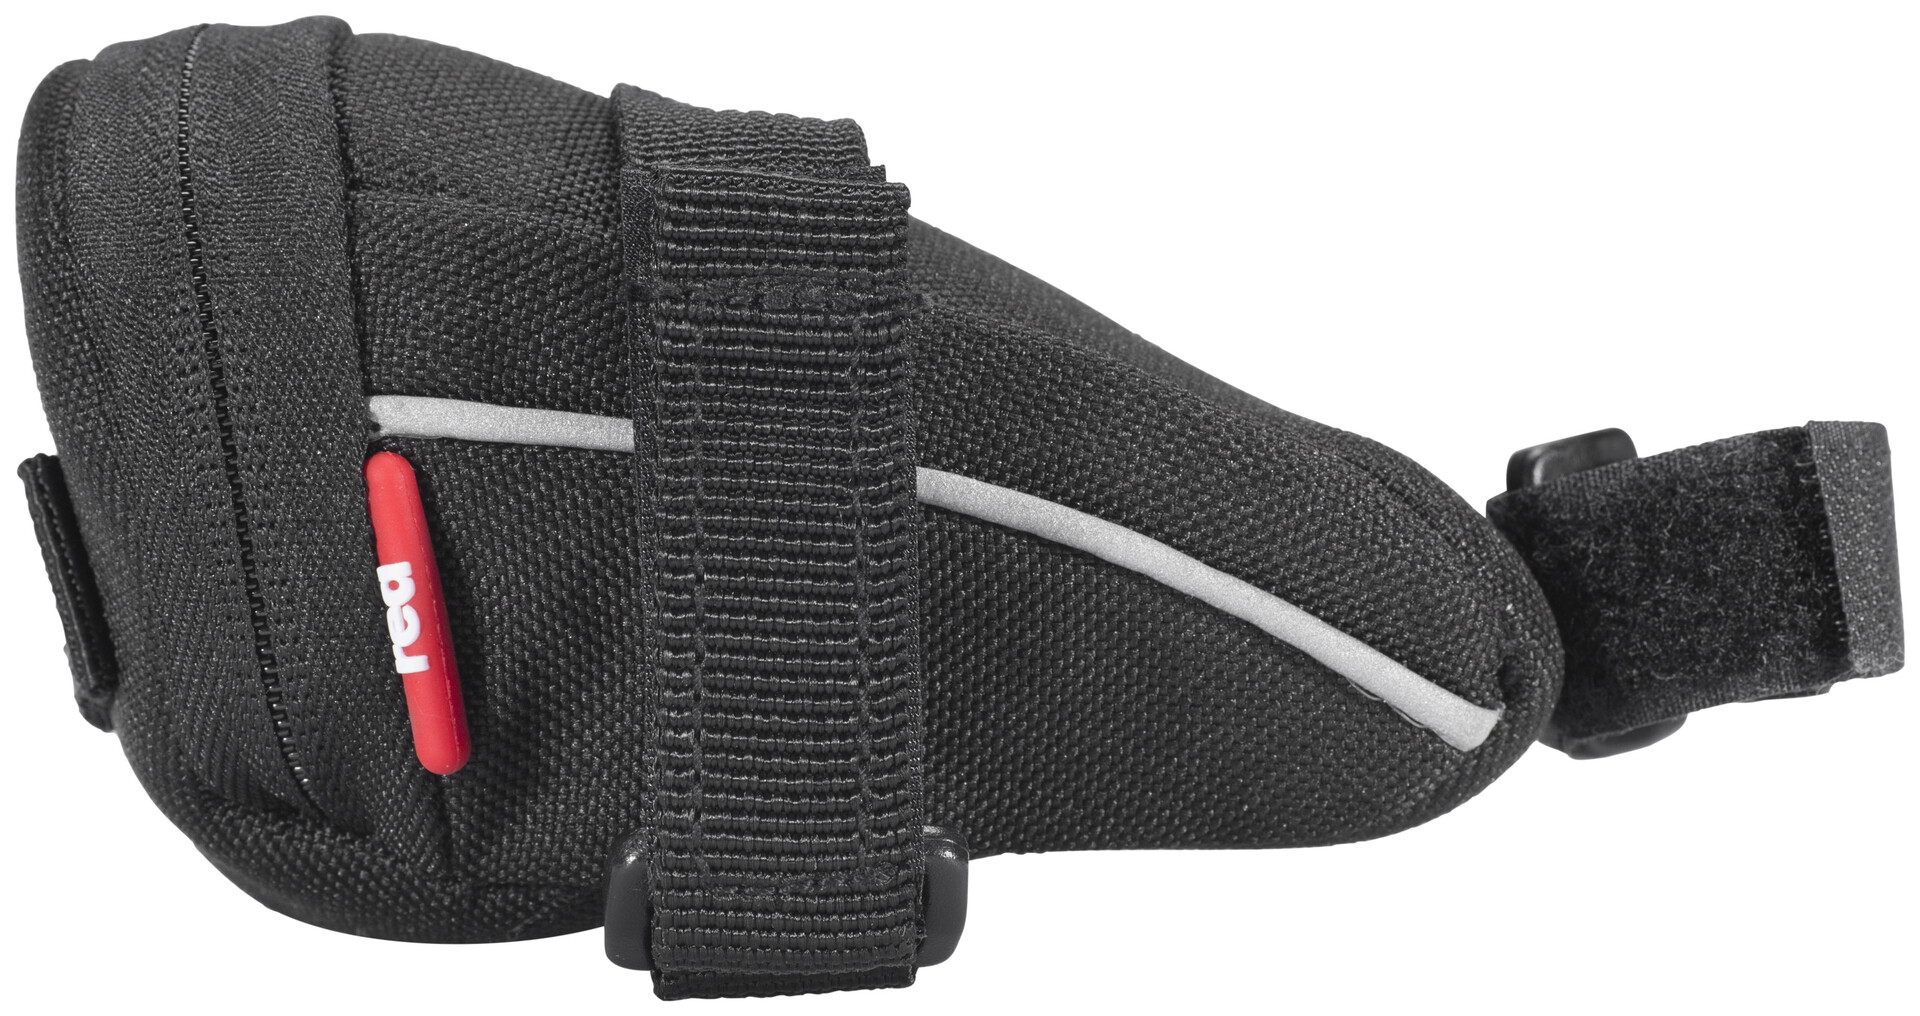 Red Cycling Products Saddle Bag Cykeltaske S, black